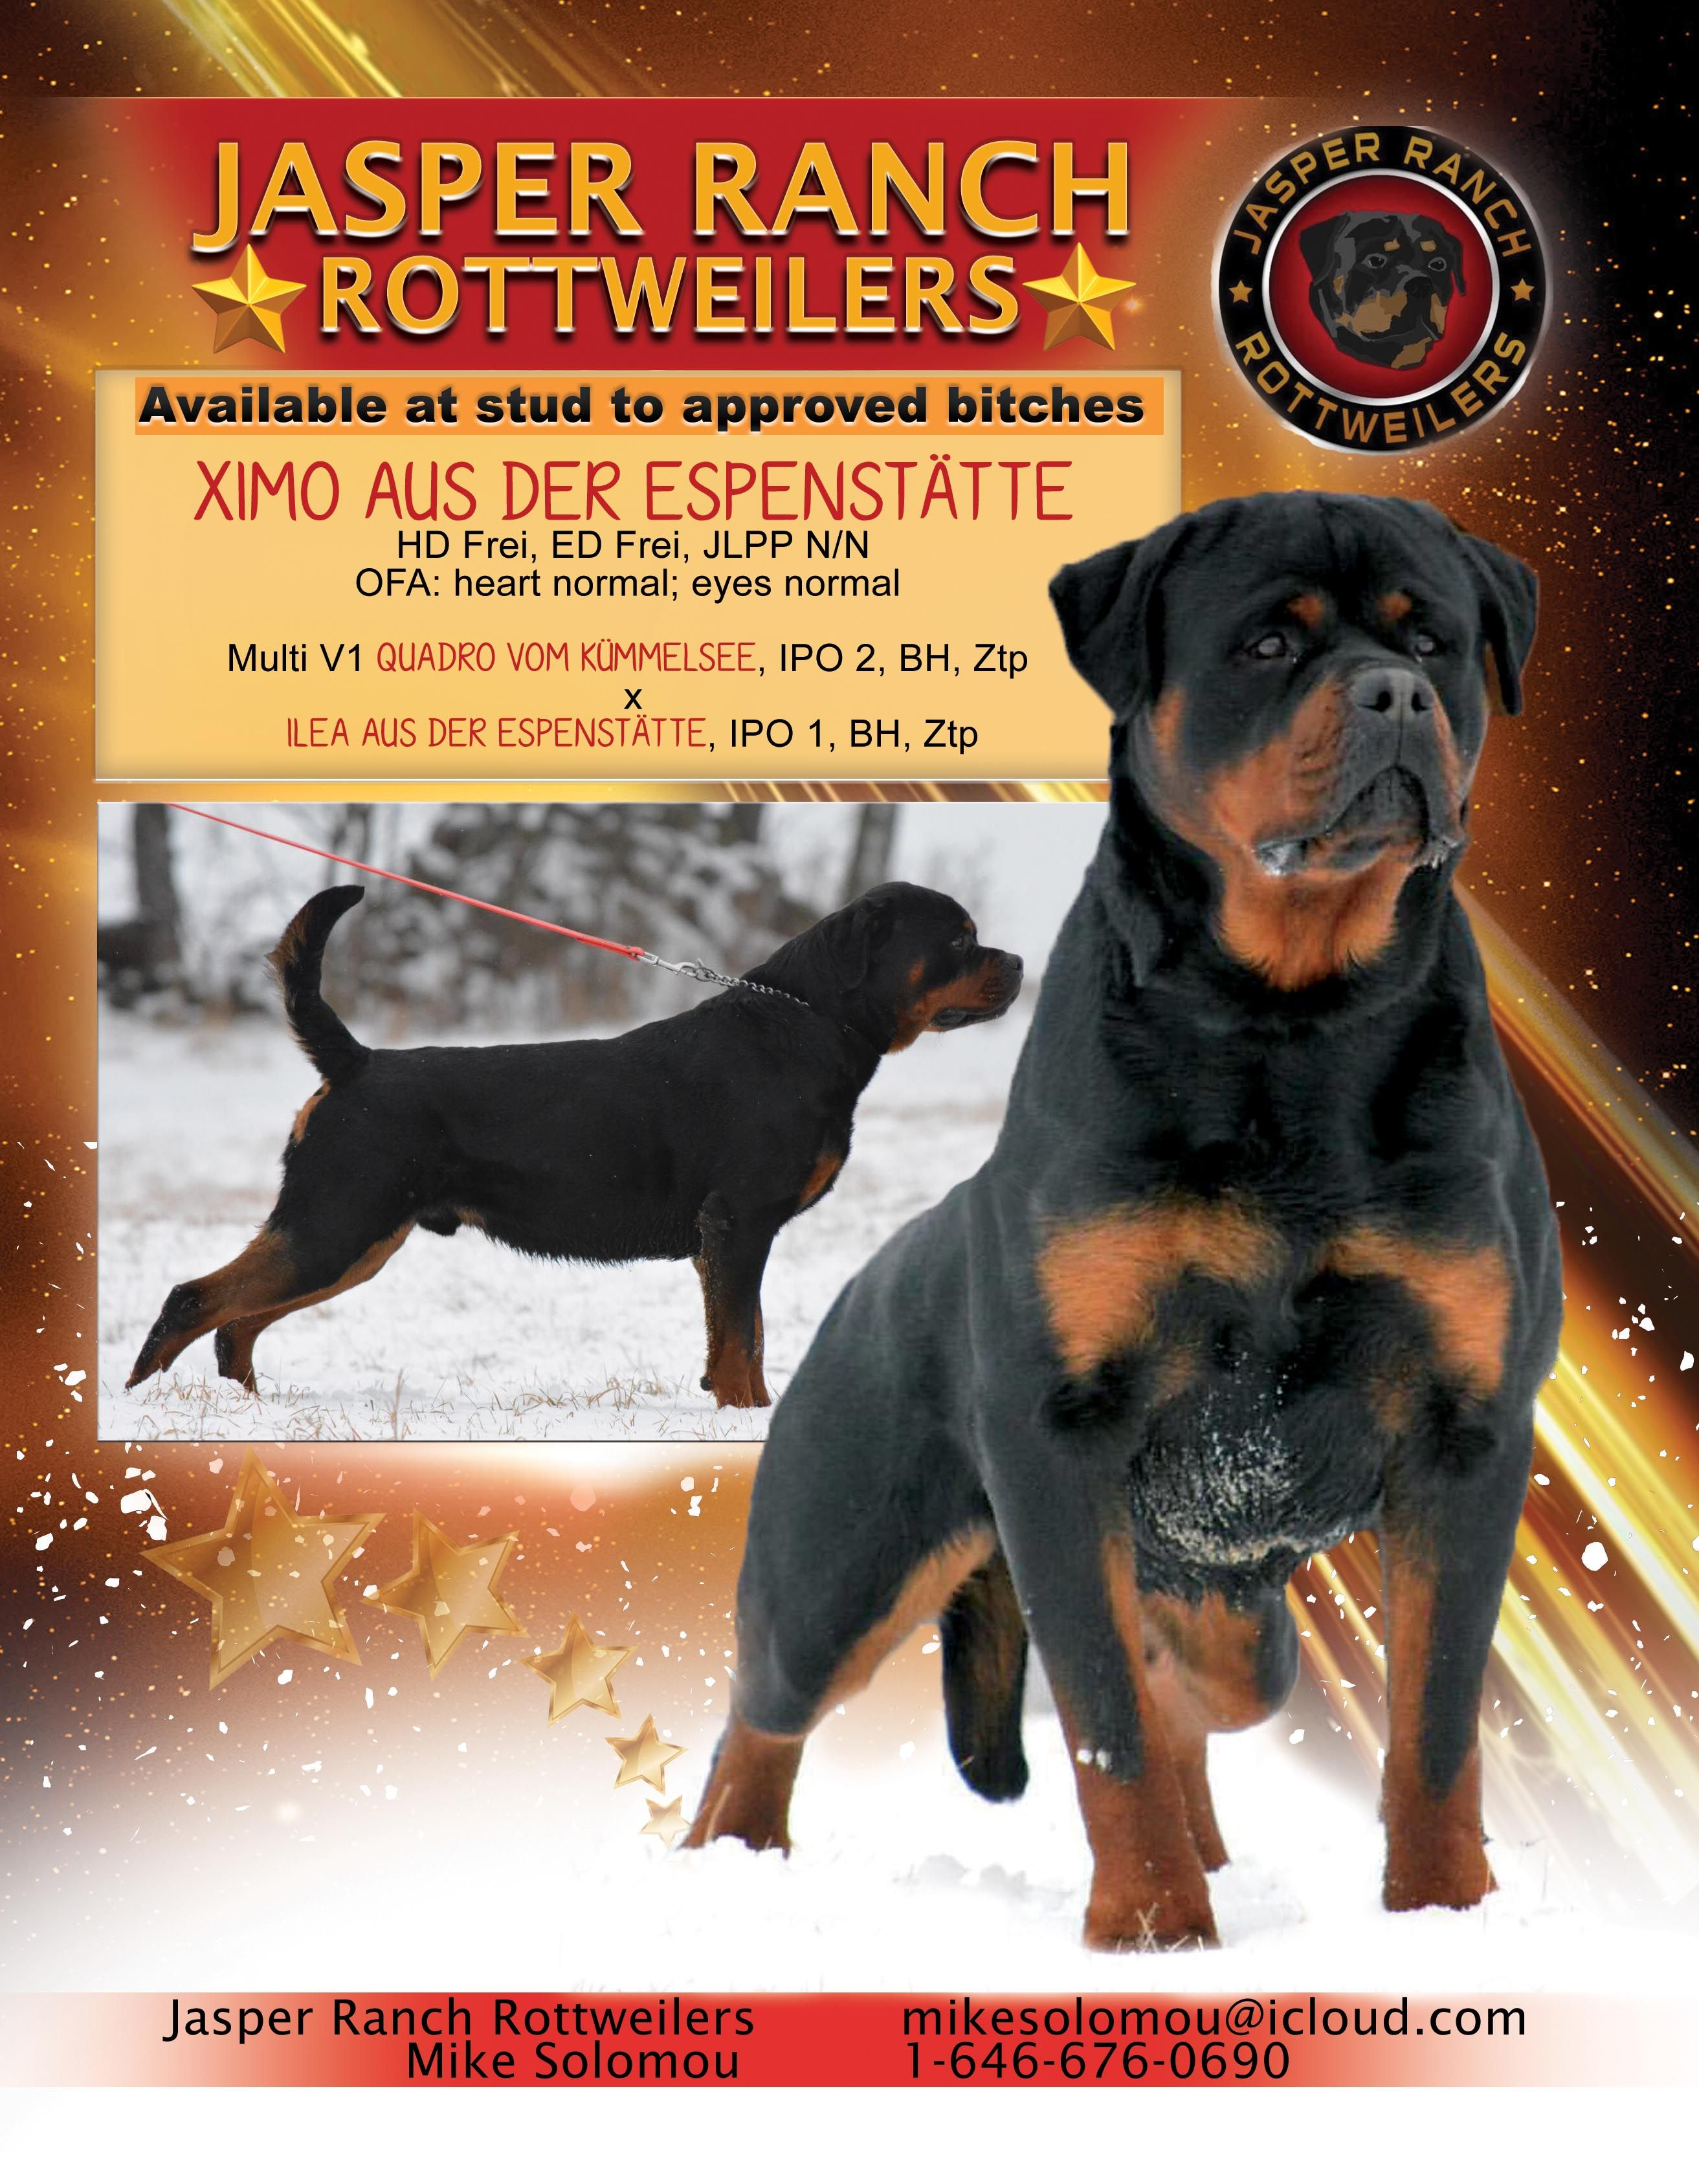 Jasper Ranch Rottweilers Mike Solomou New York Mikesolomou Icloud